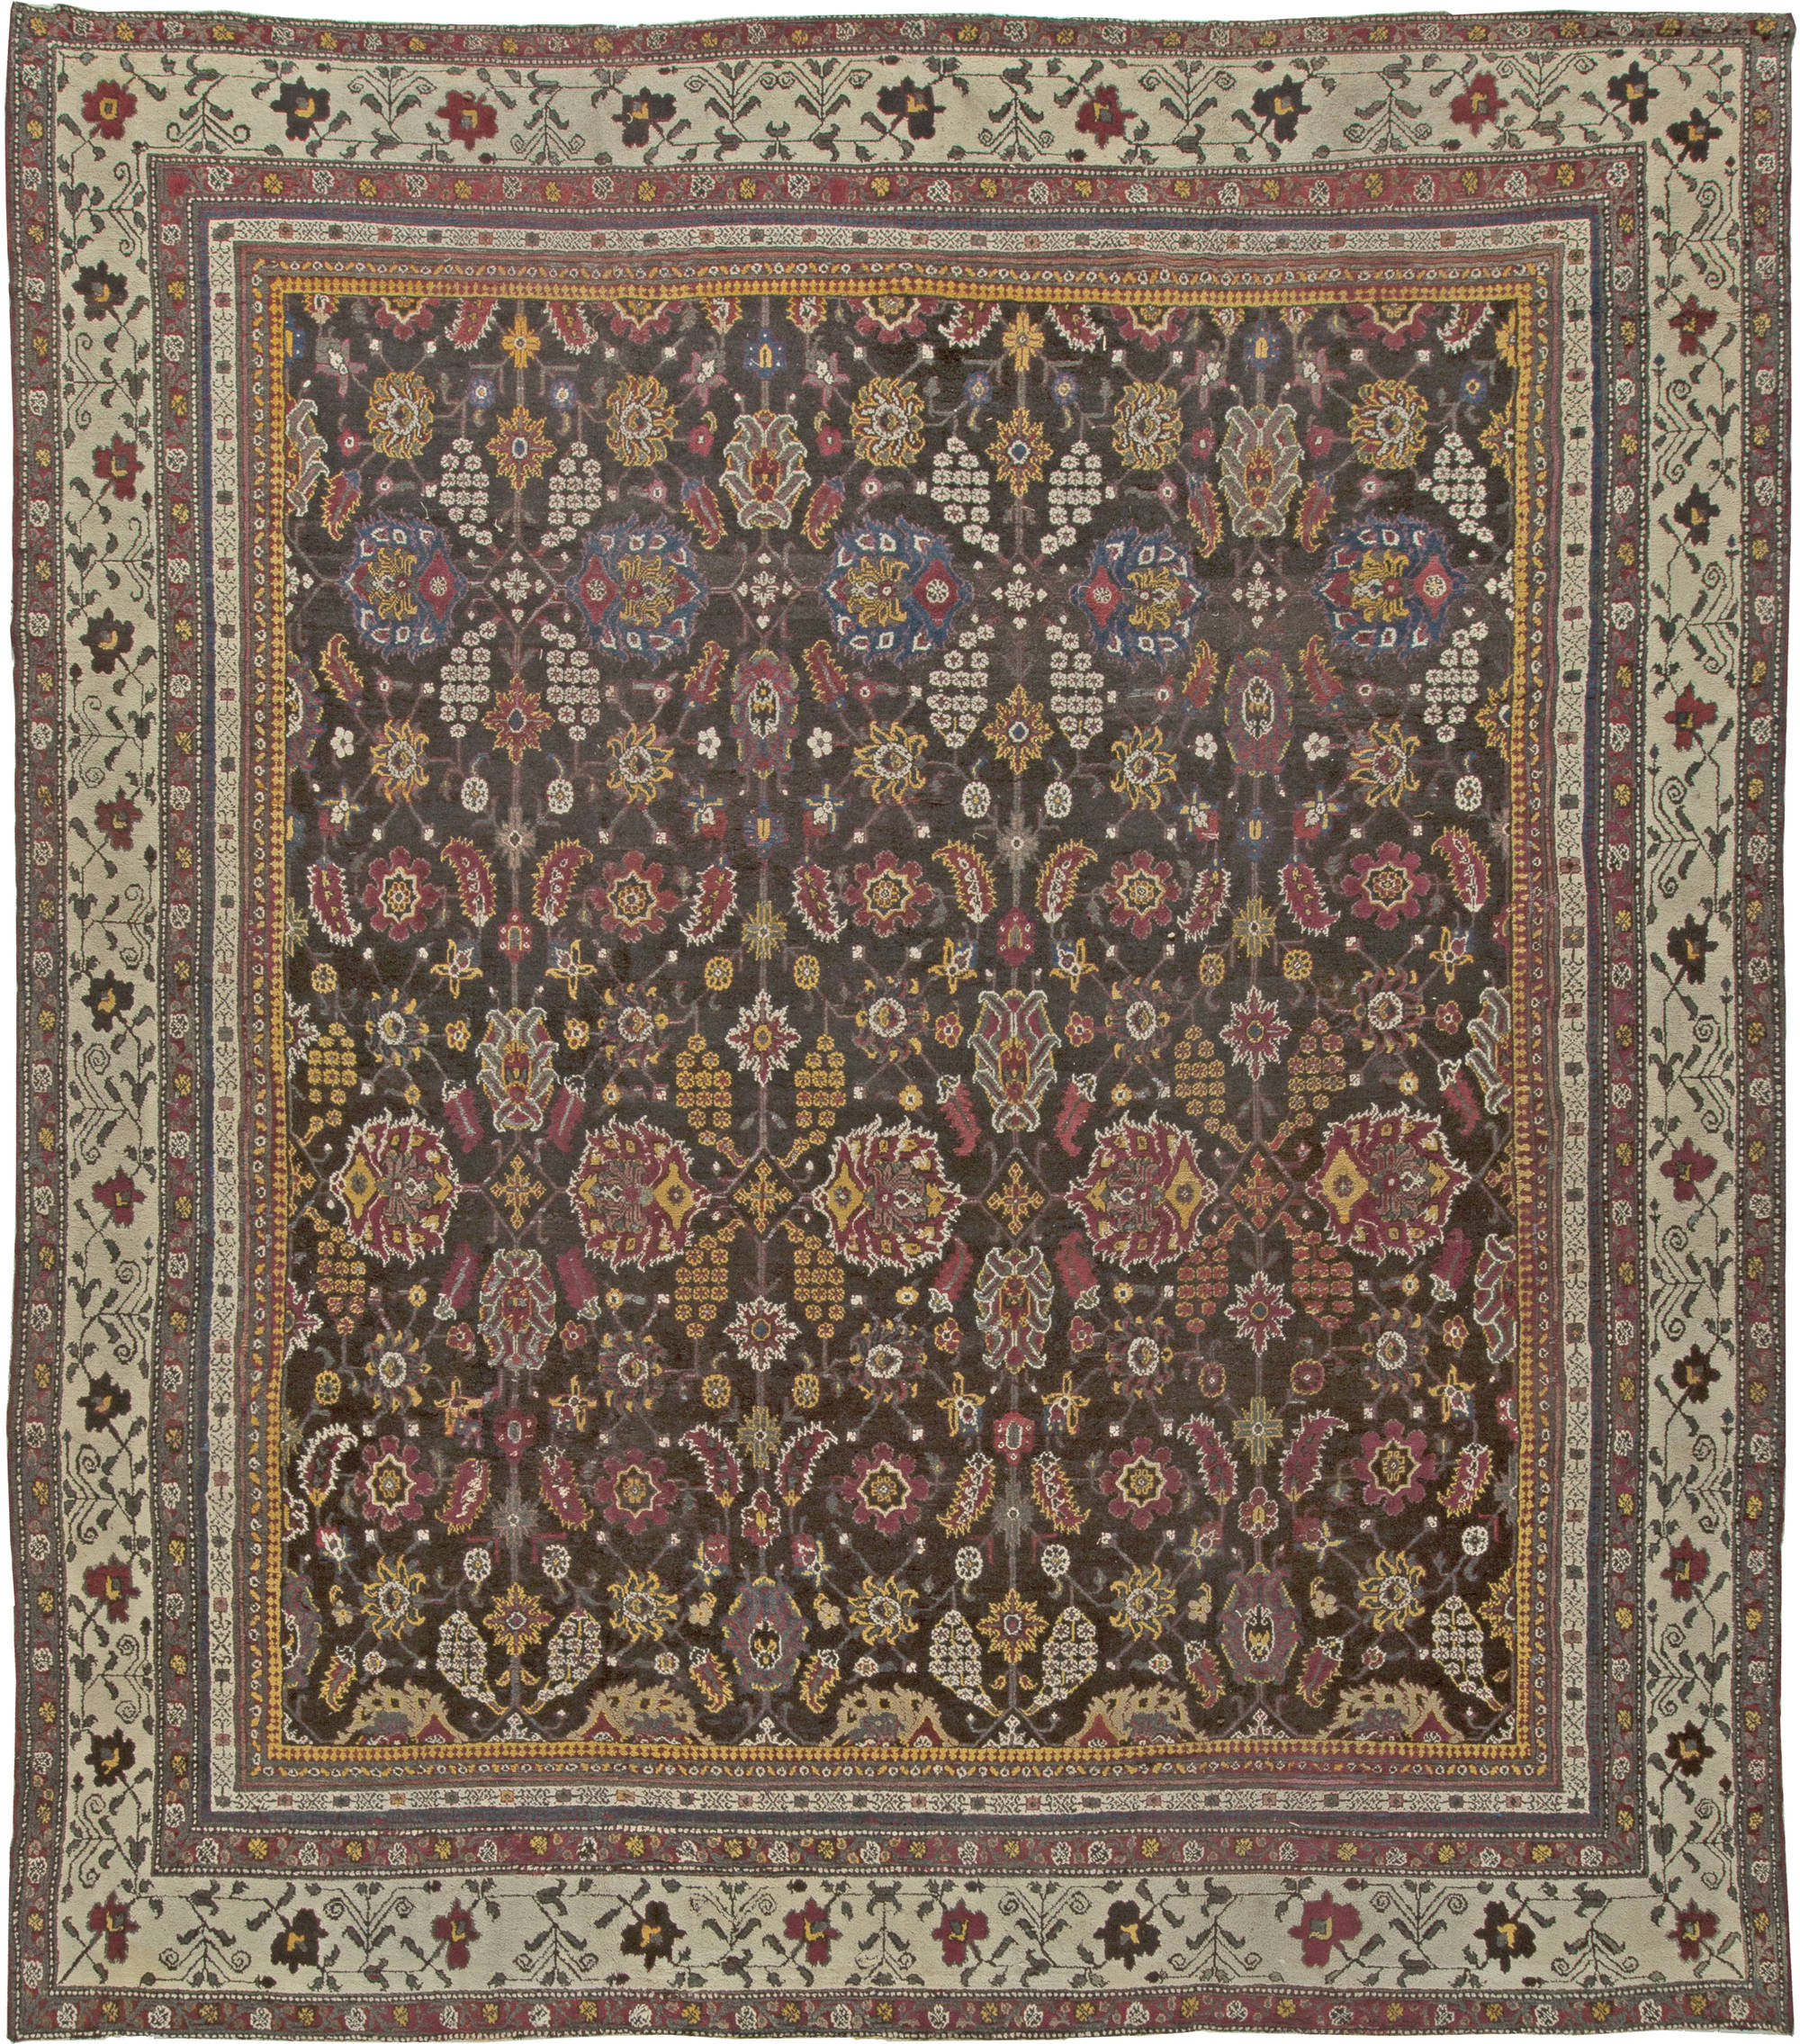 Antique Indian Agra Carpet